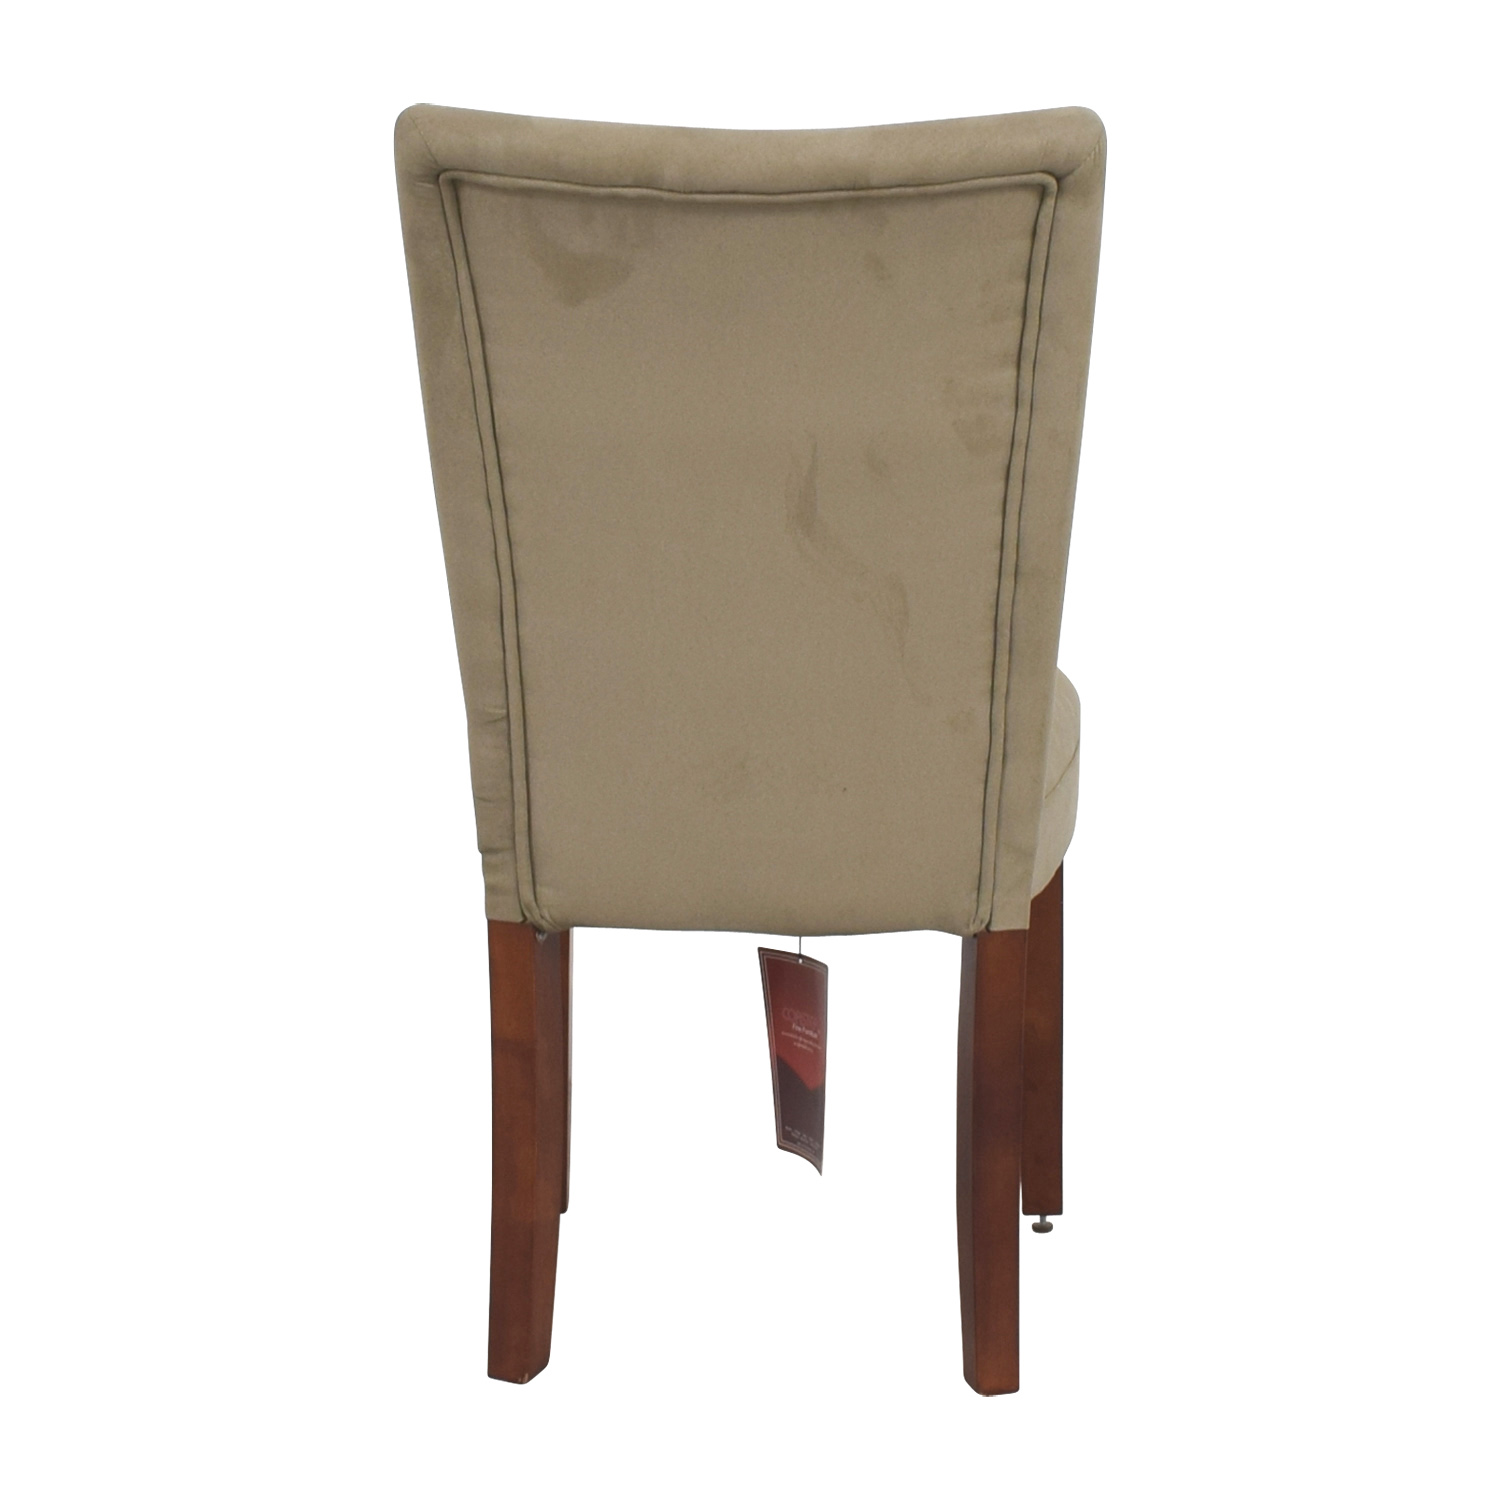 Coaster Coaster High Back Parsons Chair in Taupe Microfiber Fabric nyc